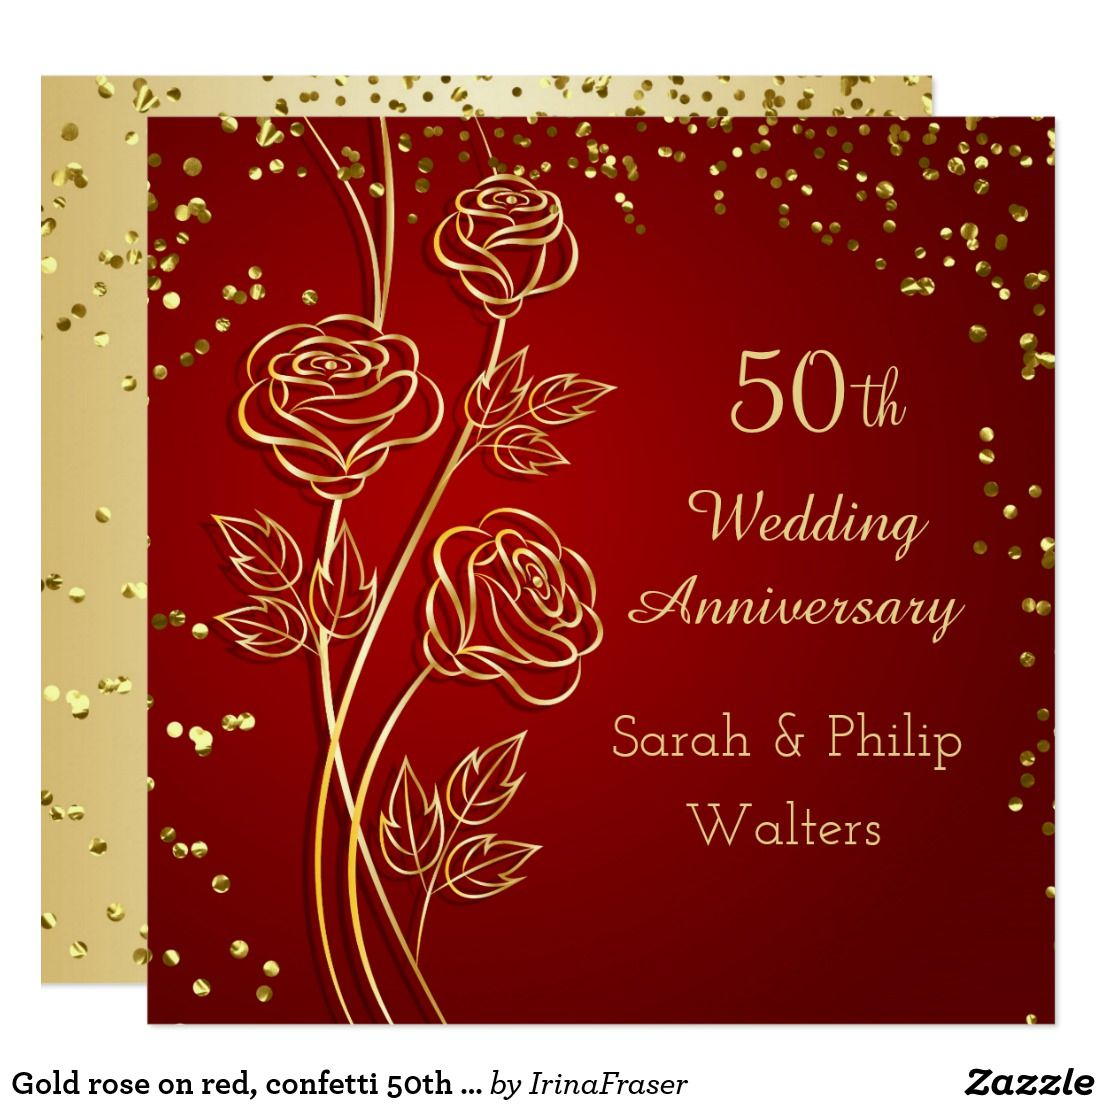 Gold rose on red, confetti 50th Anniversary Card 50th Wedding ...